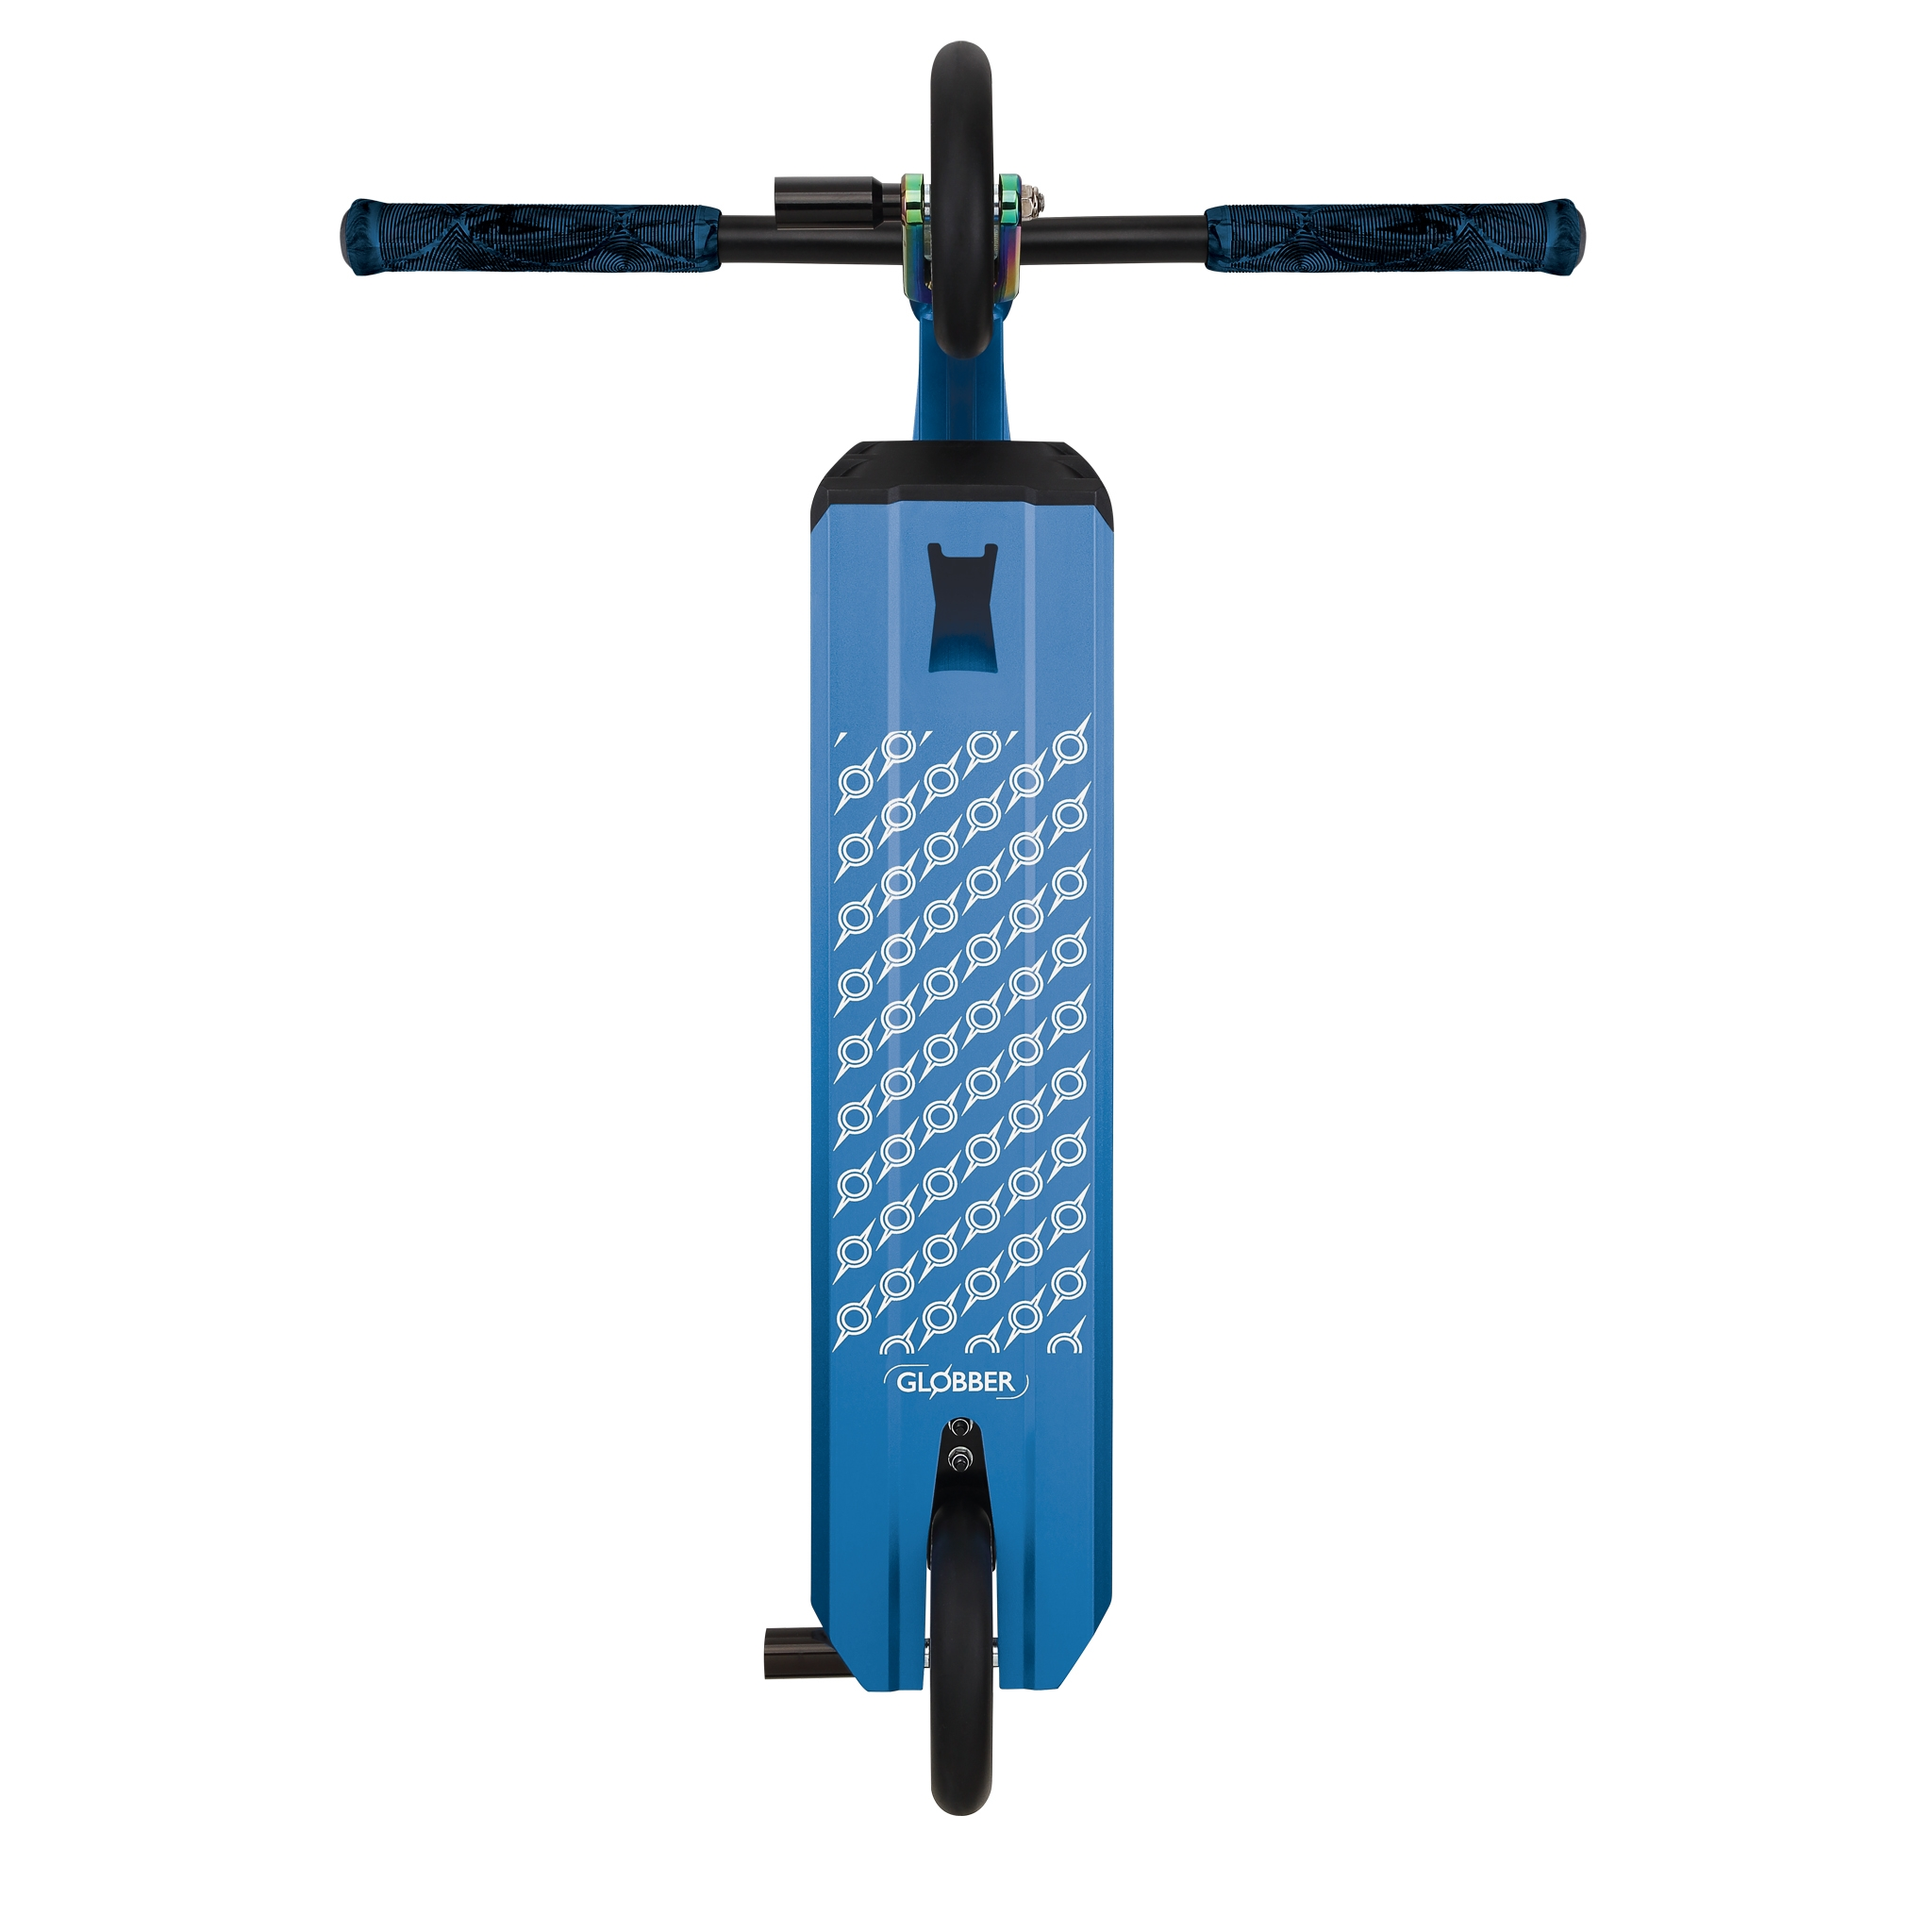 long-and-wide-stunt-scooter-handlebar-GS-900-DELUXE 5